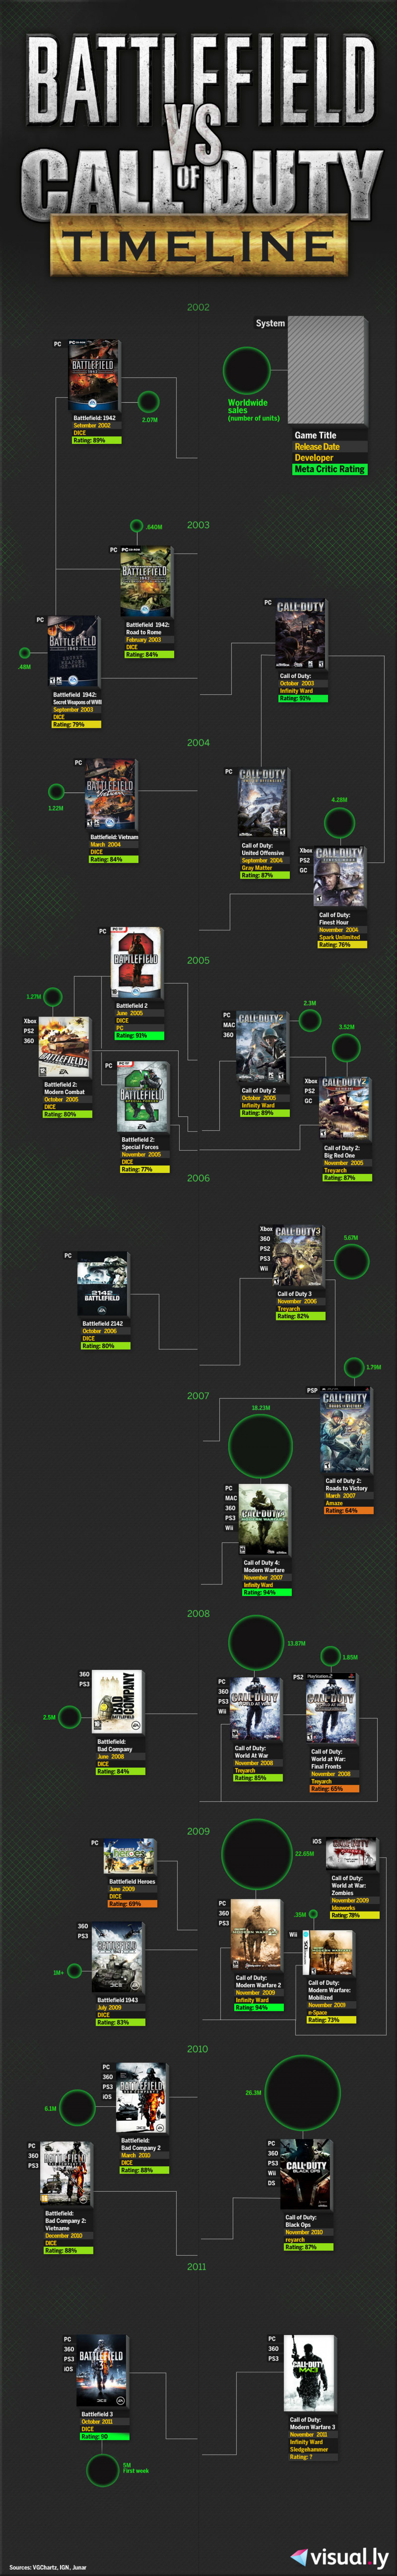 Battlefield vs Call of Duty Timeline Infographic